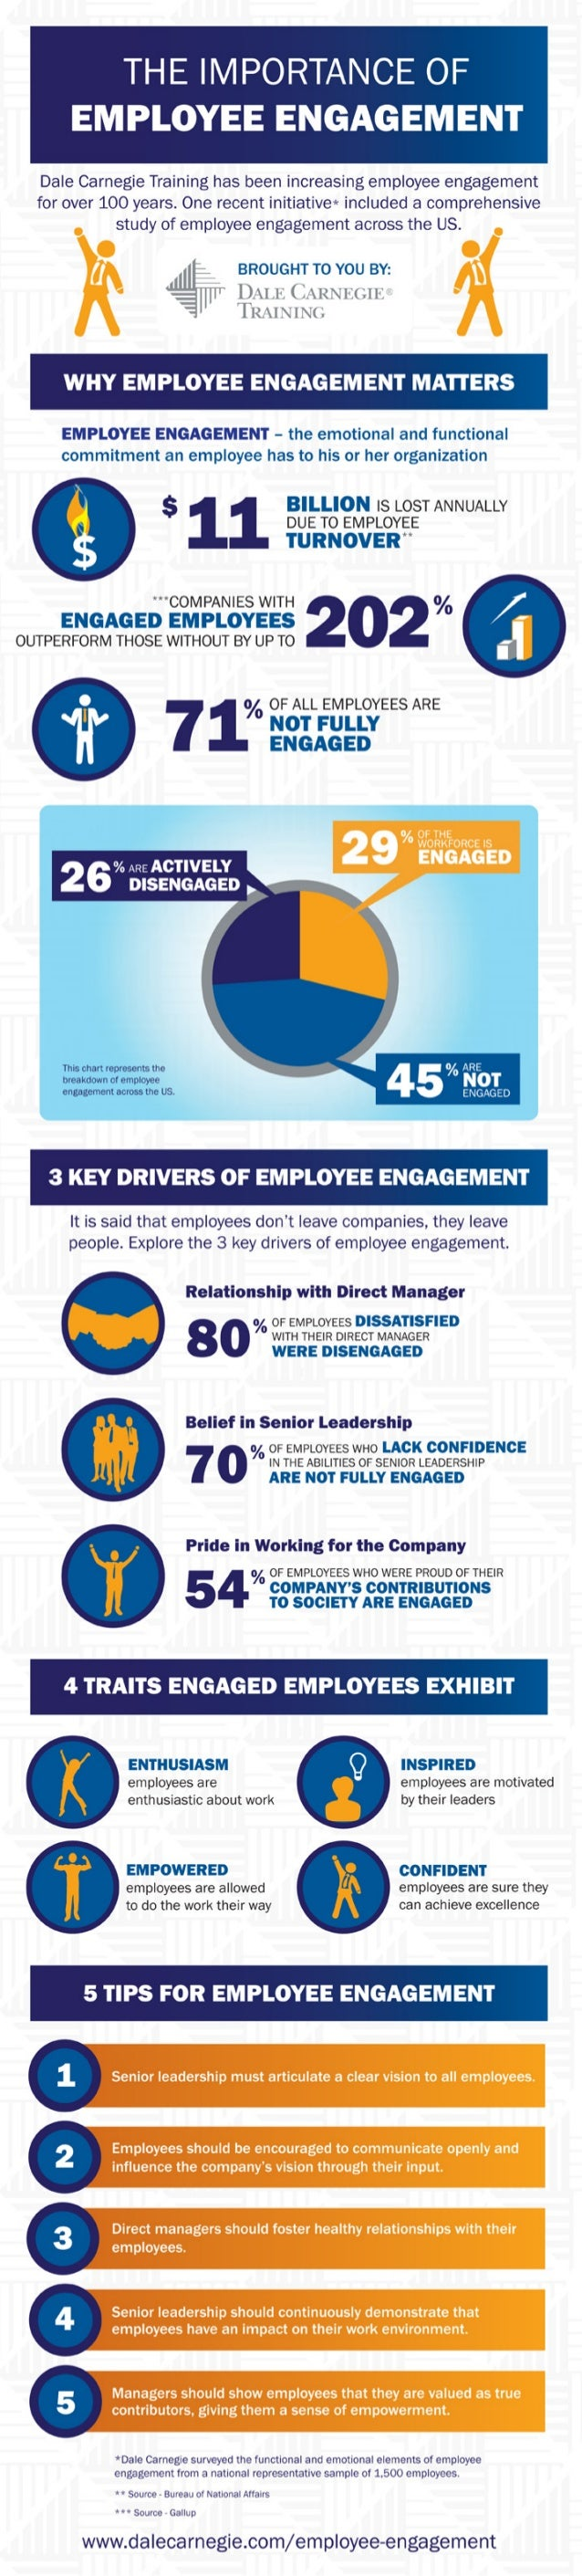 Employee Engagement- InfoGraphic